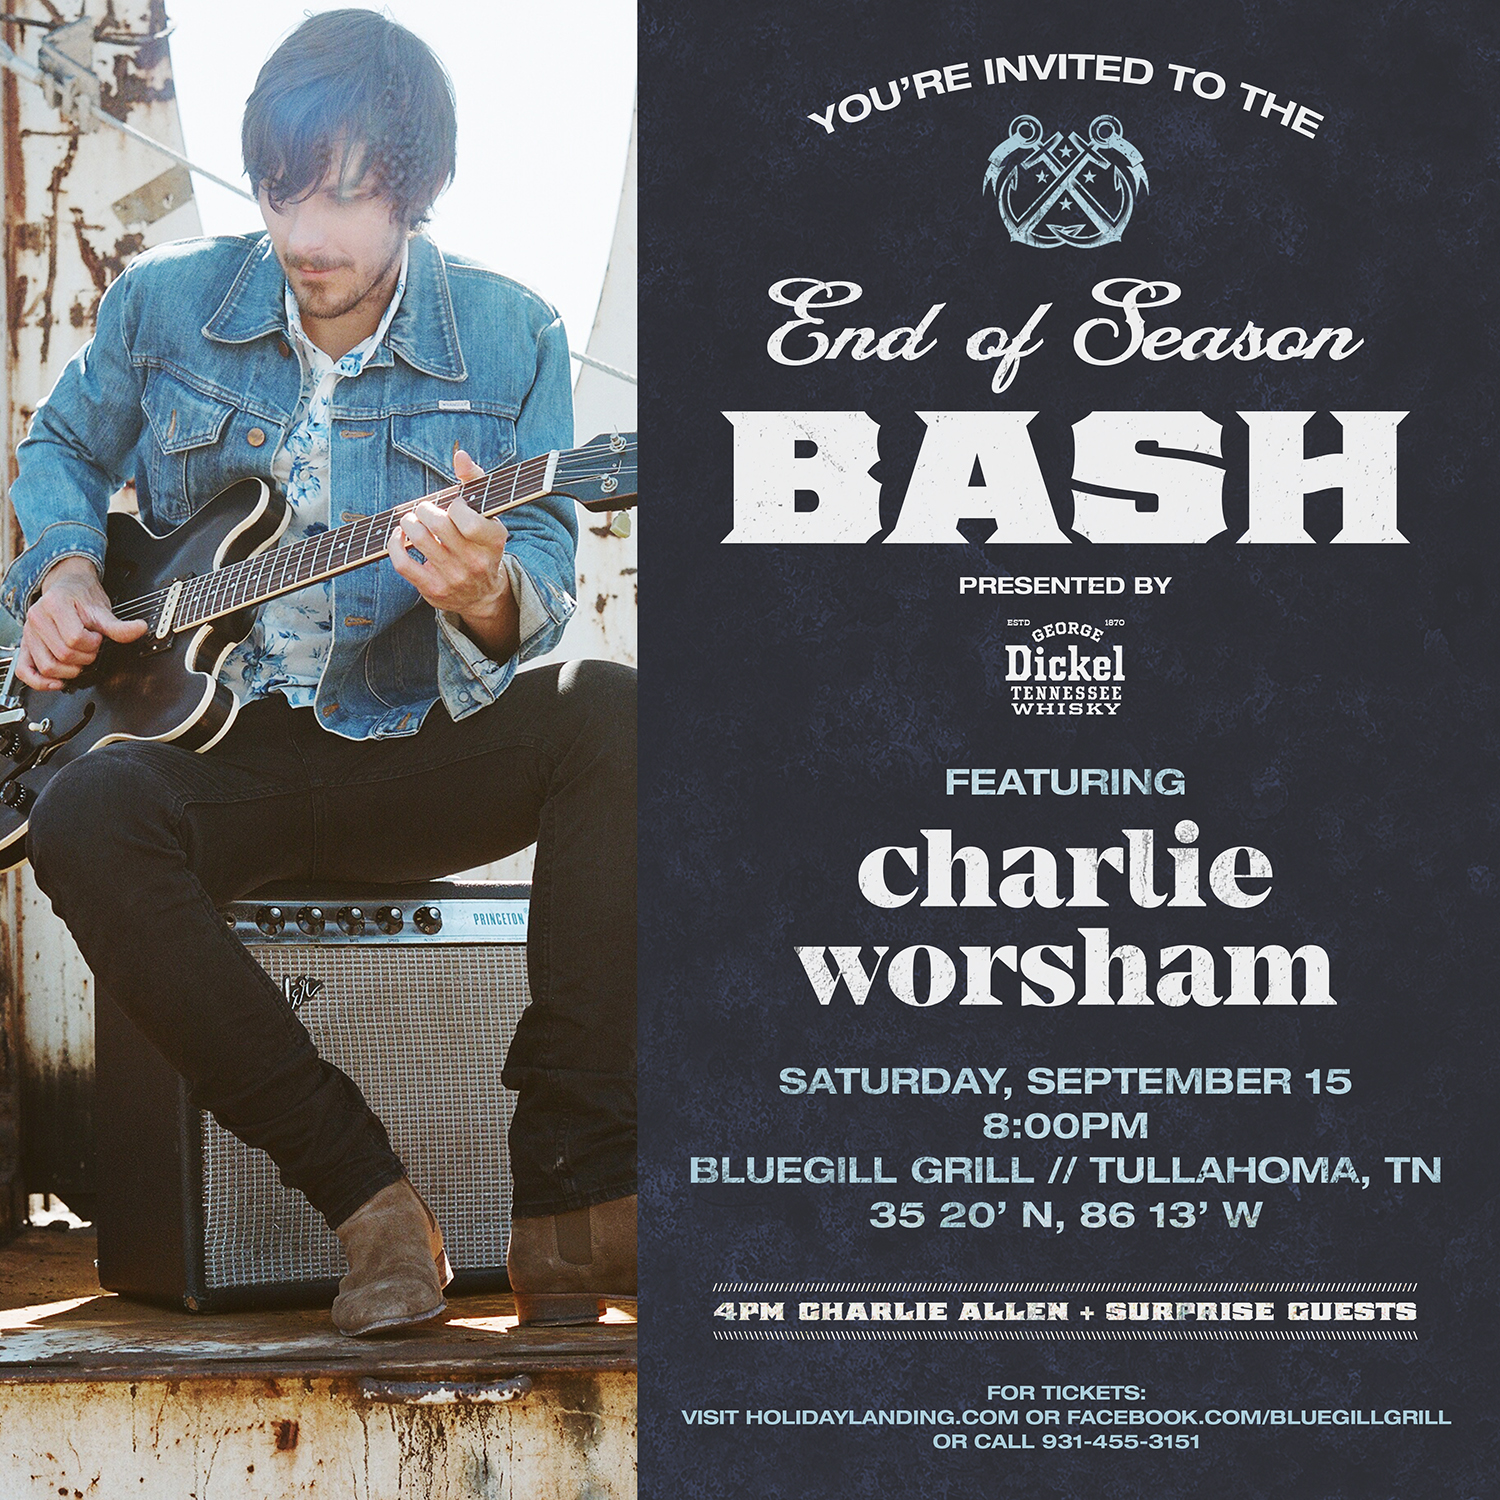 CHARLIE WORSHAM LIVE AT THE BLUEGILL GRILL TULLAHOMA TN PRESENTED BY GEORGE DICKEL SEPTEMBER 15 2018 8 PM